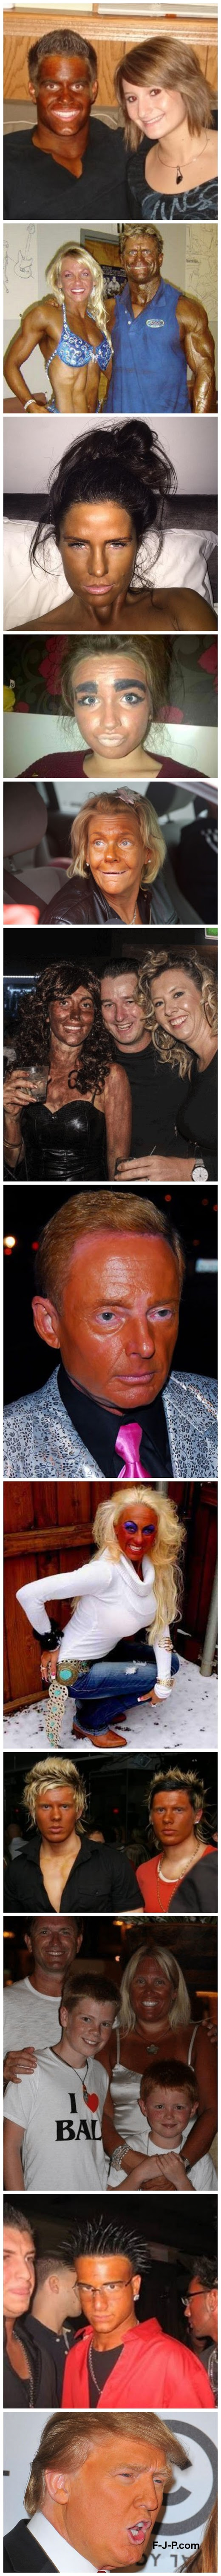 Collection of terrible tan pictures, including Donald Trump, the orange wonder